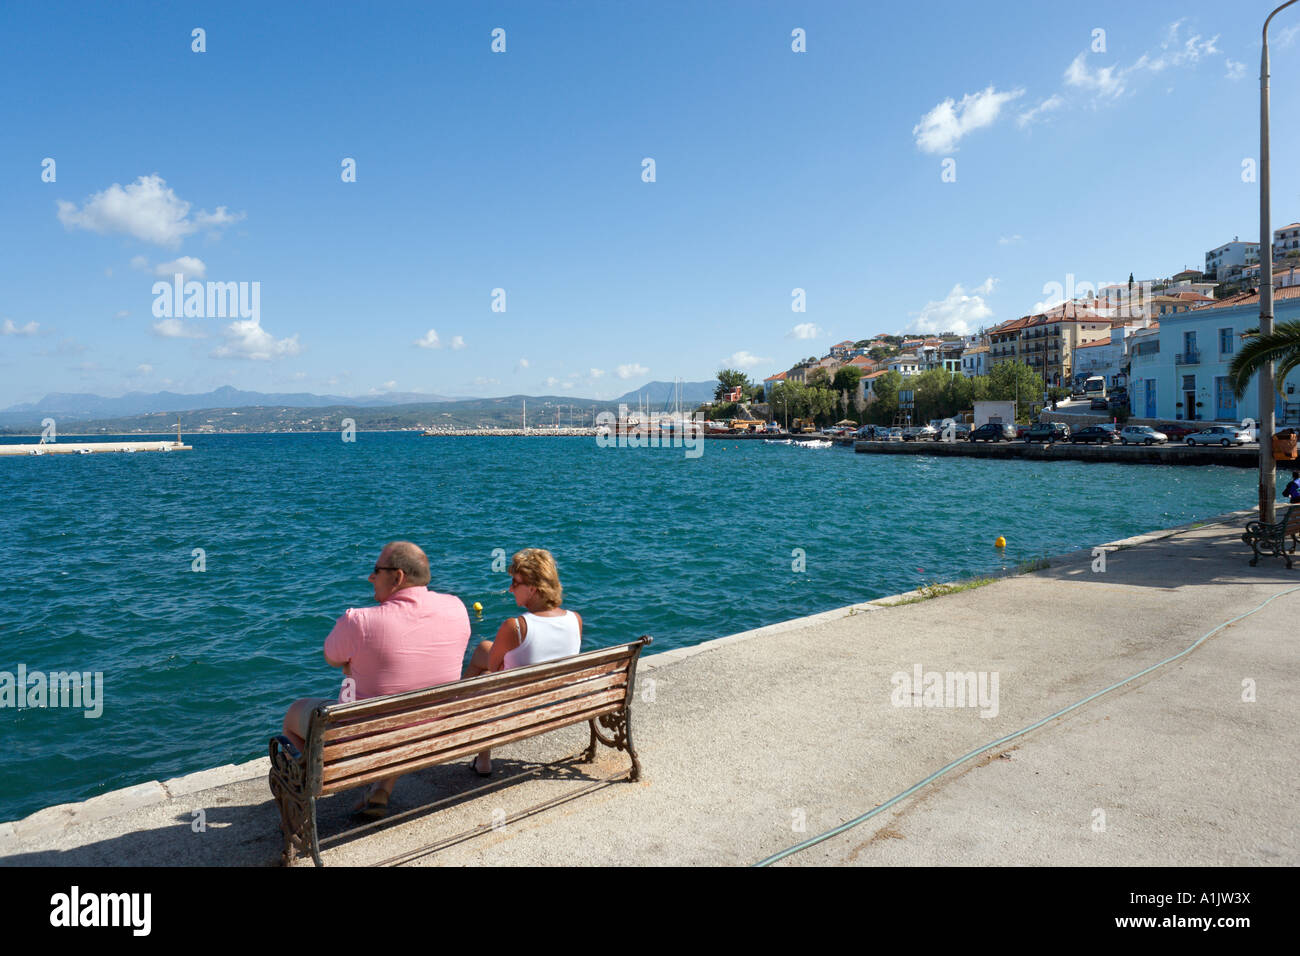 Couple sitting on the seafront in the harbour at Pylos, near Yialova, Messinia, Peloponnese, Greece - Stock Image